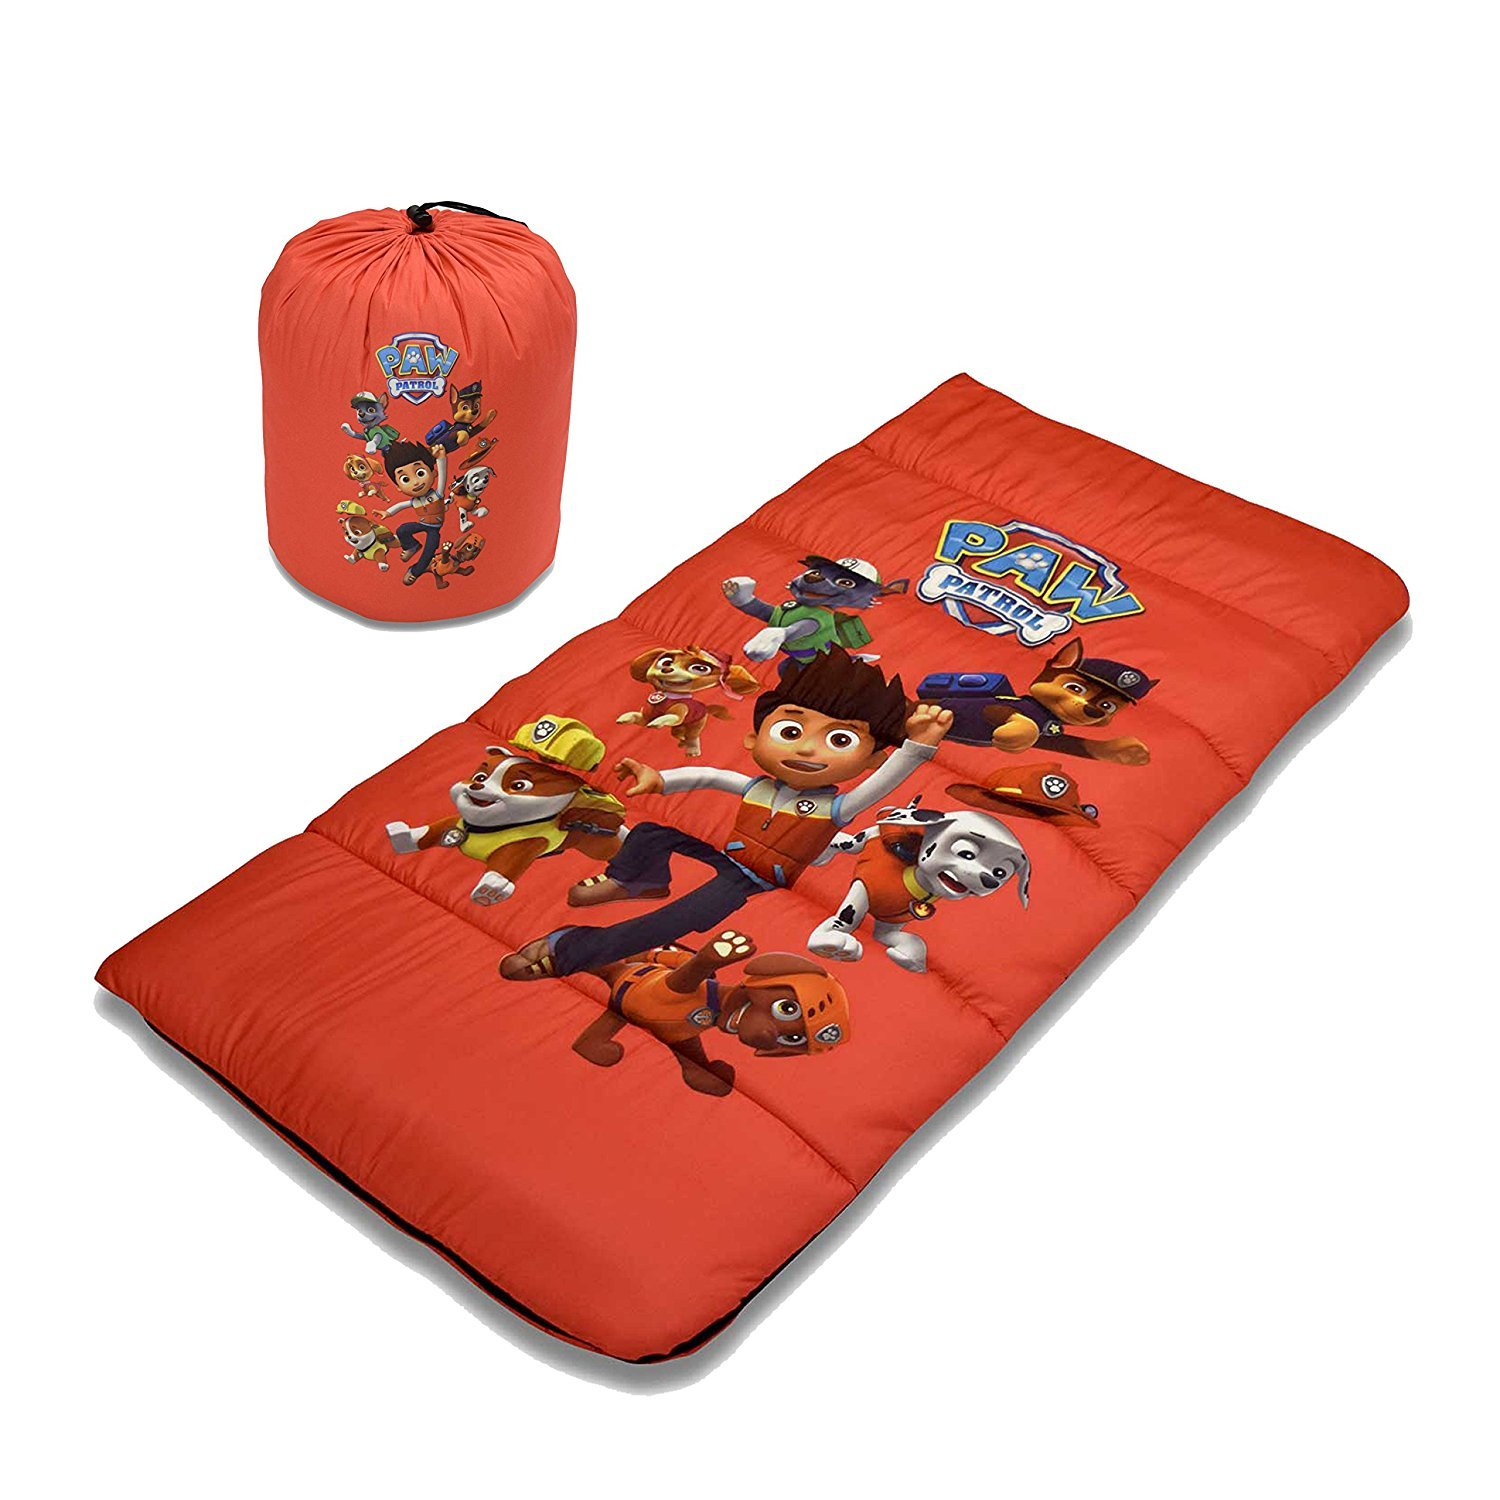 Cambay Linens Nickelodeon Kids Paw Patrol Sleeping Bag with Storage Bag, Red